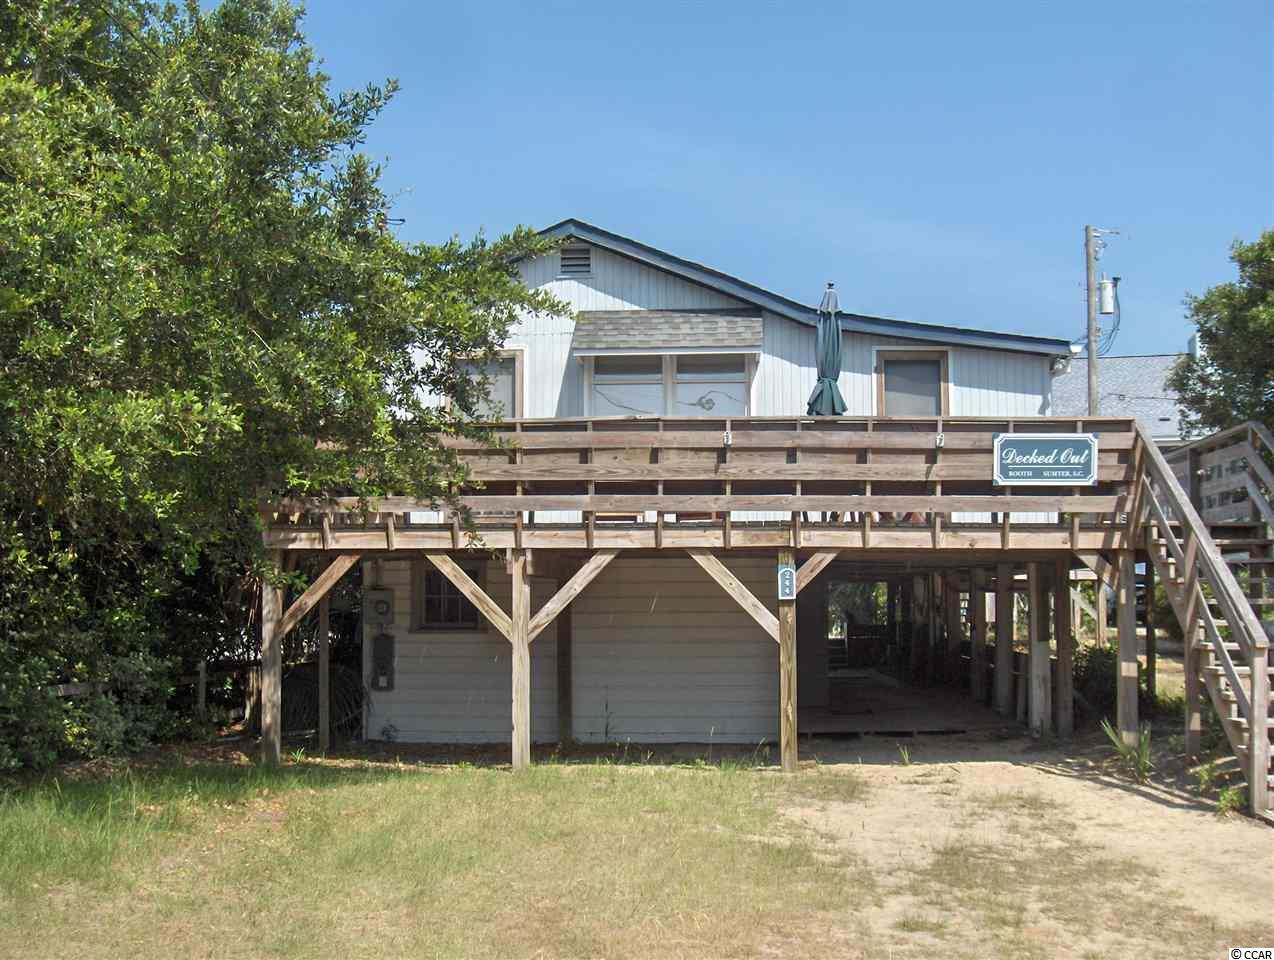 """Decked Out"" is The best off ocean location on Pawleys. On the North End and Just behind oceanfronts homes. This home fronts on both Atlantic Avenue and Pearce Streets for multiple access. Beach access just steps away. No busy street to cross for your darlings. A real old fashioned Pawleys cottage on a nice lot that would allow enlargements and great parking. This home has a grandfathered apartment underneath with comfortable sitting, kitchen and full bath.  Window units supply the a/c and gas wall heaters provide comfort in winter. Huge deck areas and large screened porch. Everything is here and ready for your Pawleys vacation. Enjoy the north end beaches. One block to the creek boat ramp. Comfortable bedrooms share full baths with tub shower combos. Selling furnished with exceptions. See list of items that do not convey in Associated Documents. Measurements are estimated to best of ability. Buyer to confirm all measurements"